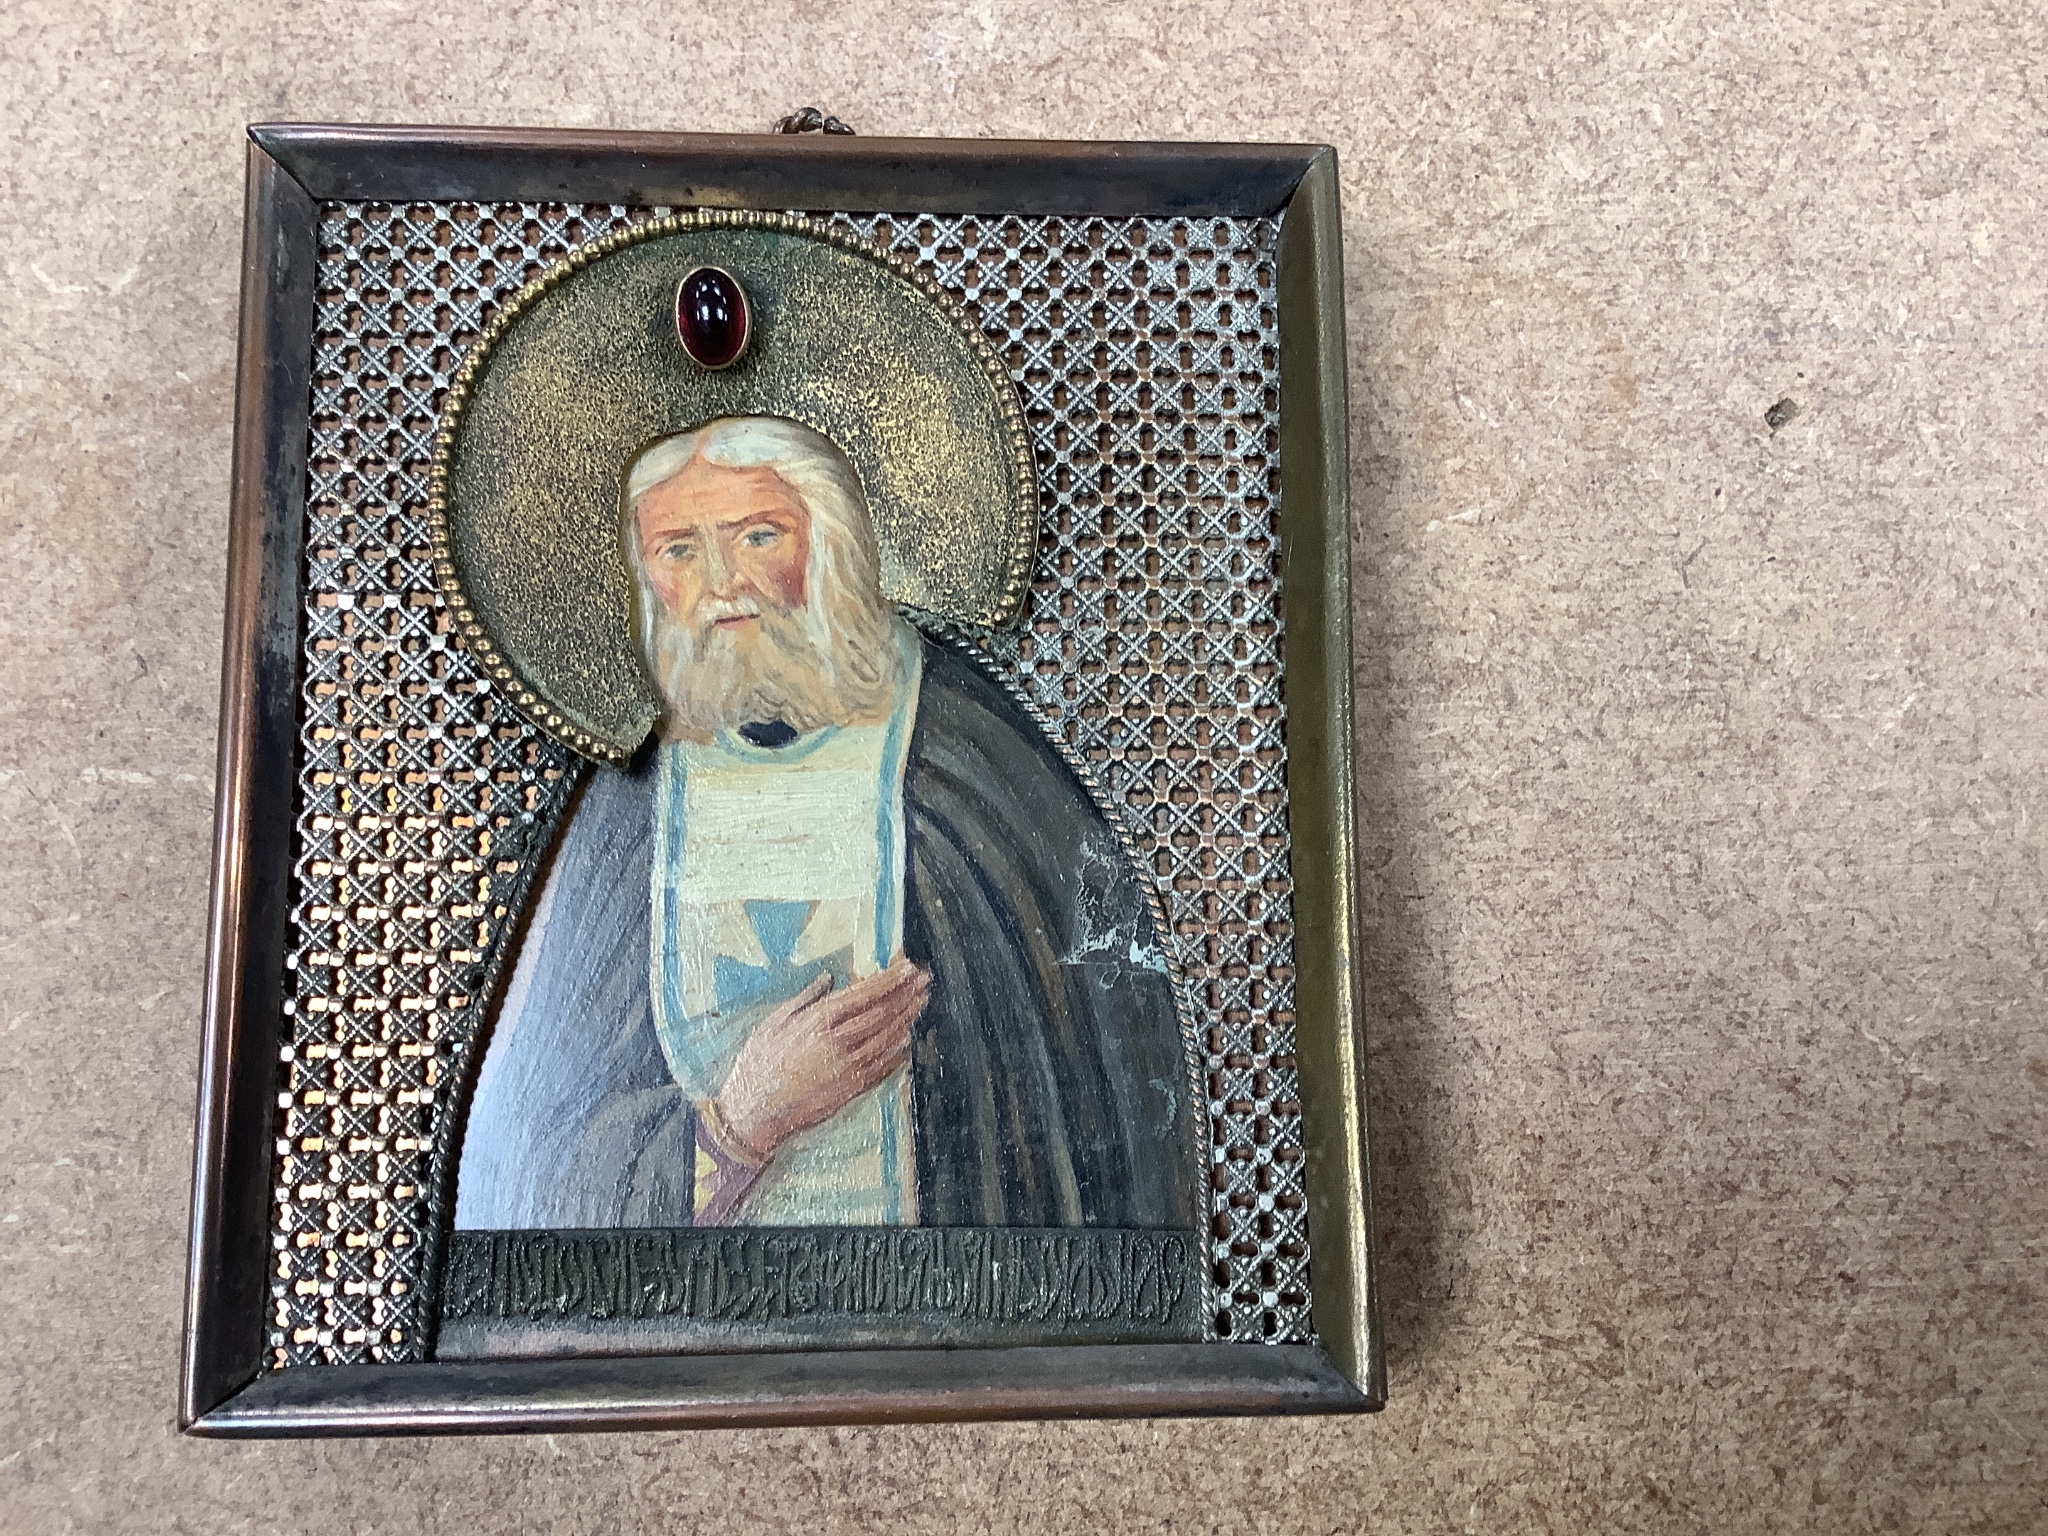 A 19th century Daguerreotype portrait of a gentleman, together with a small Russian painted icon, a - Image 4 of 4